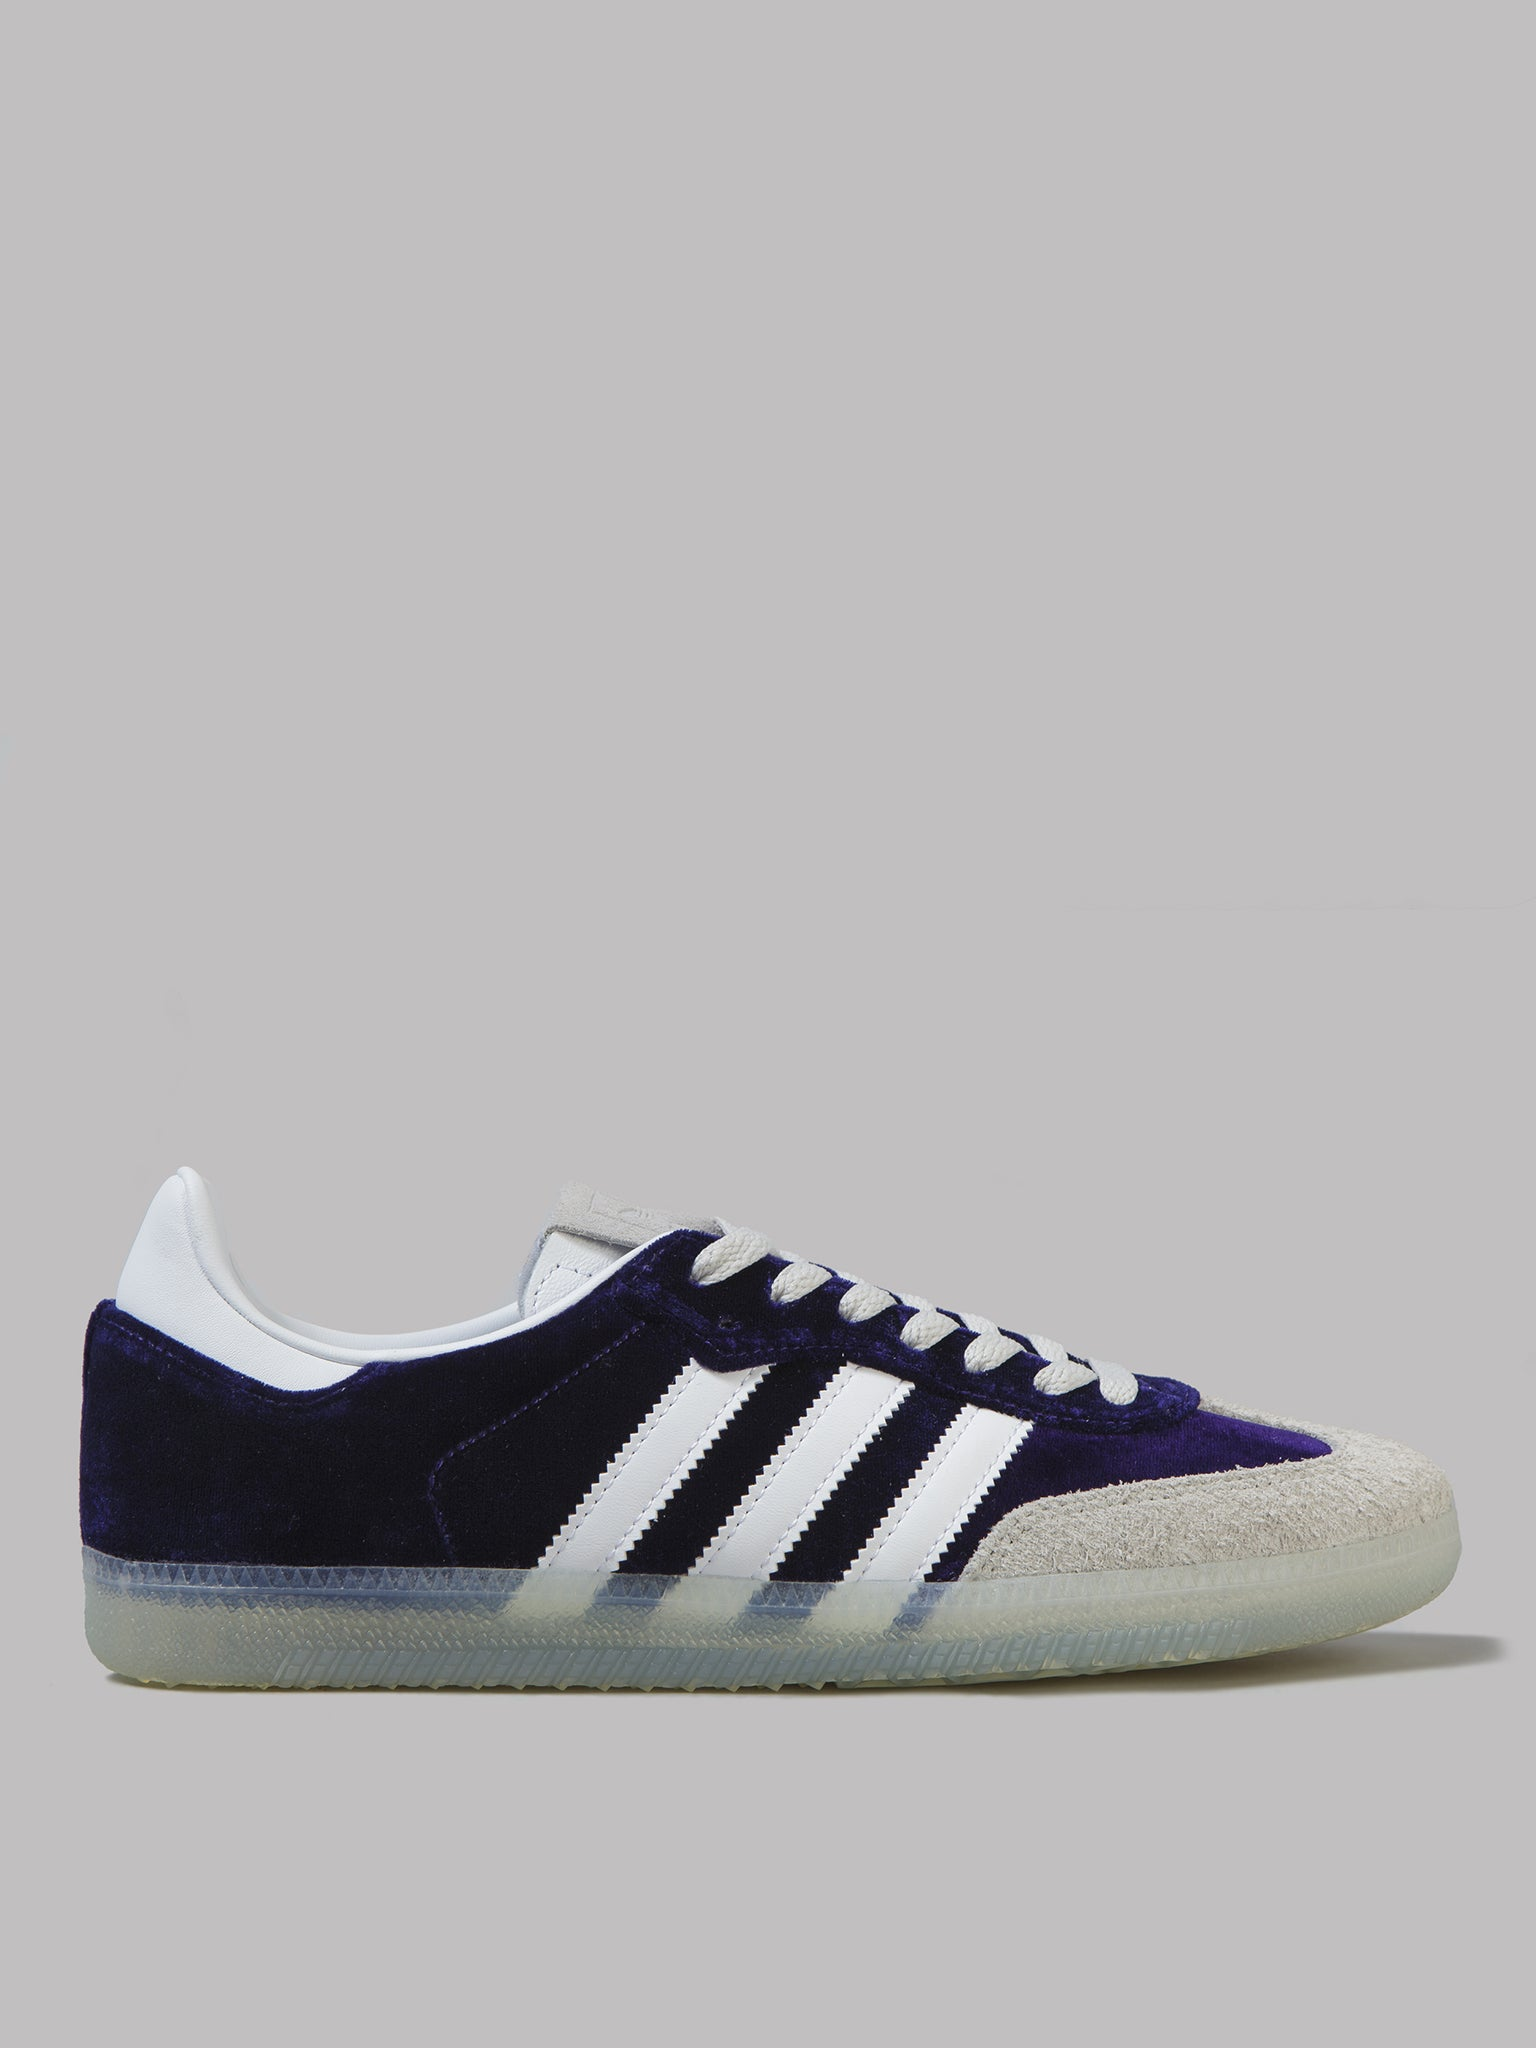 reputable site 36951 126be adidas-Samba-041819-0001.jpg v 1555603724